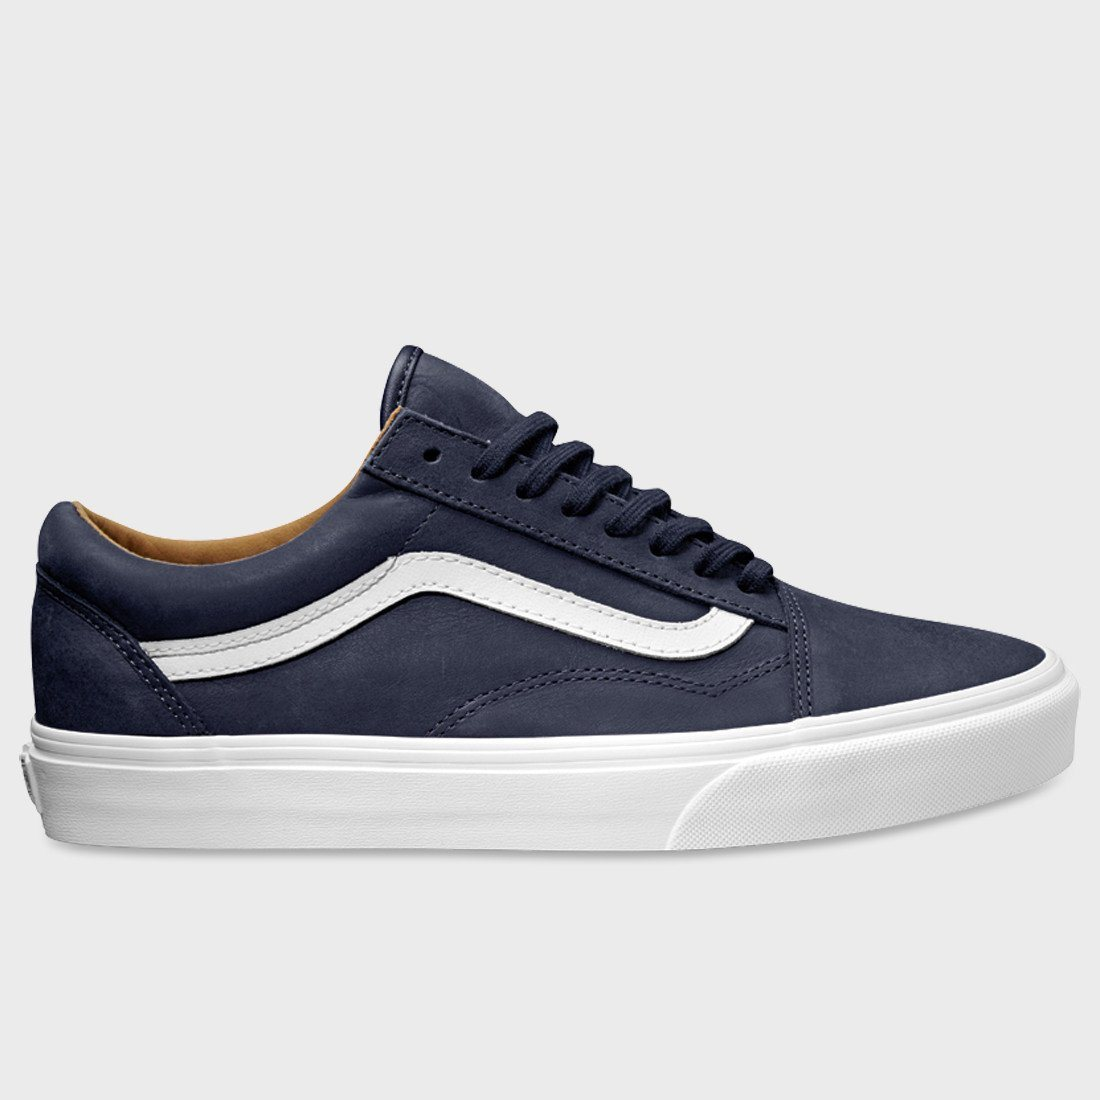 Vans Old Skool Premium Leather Shoe